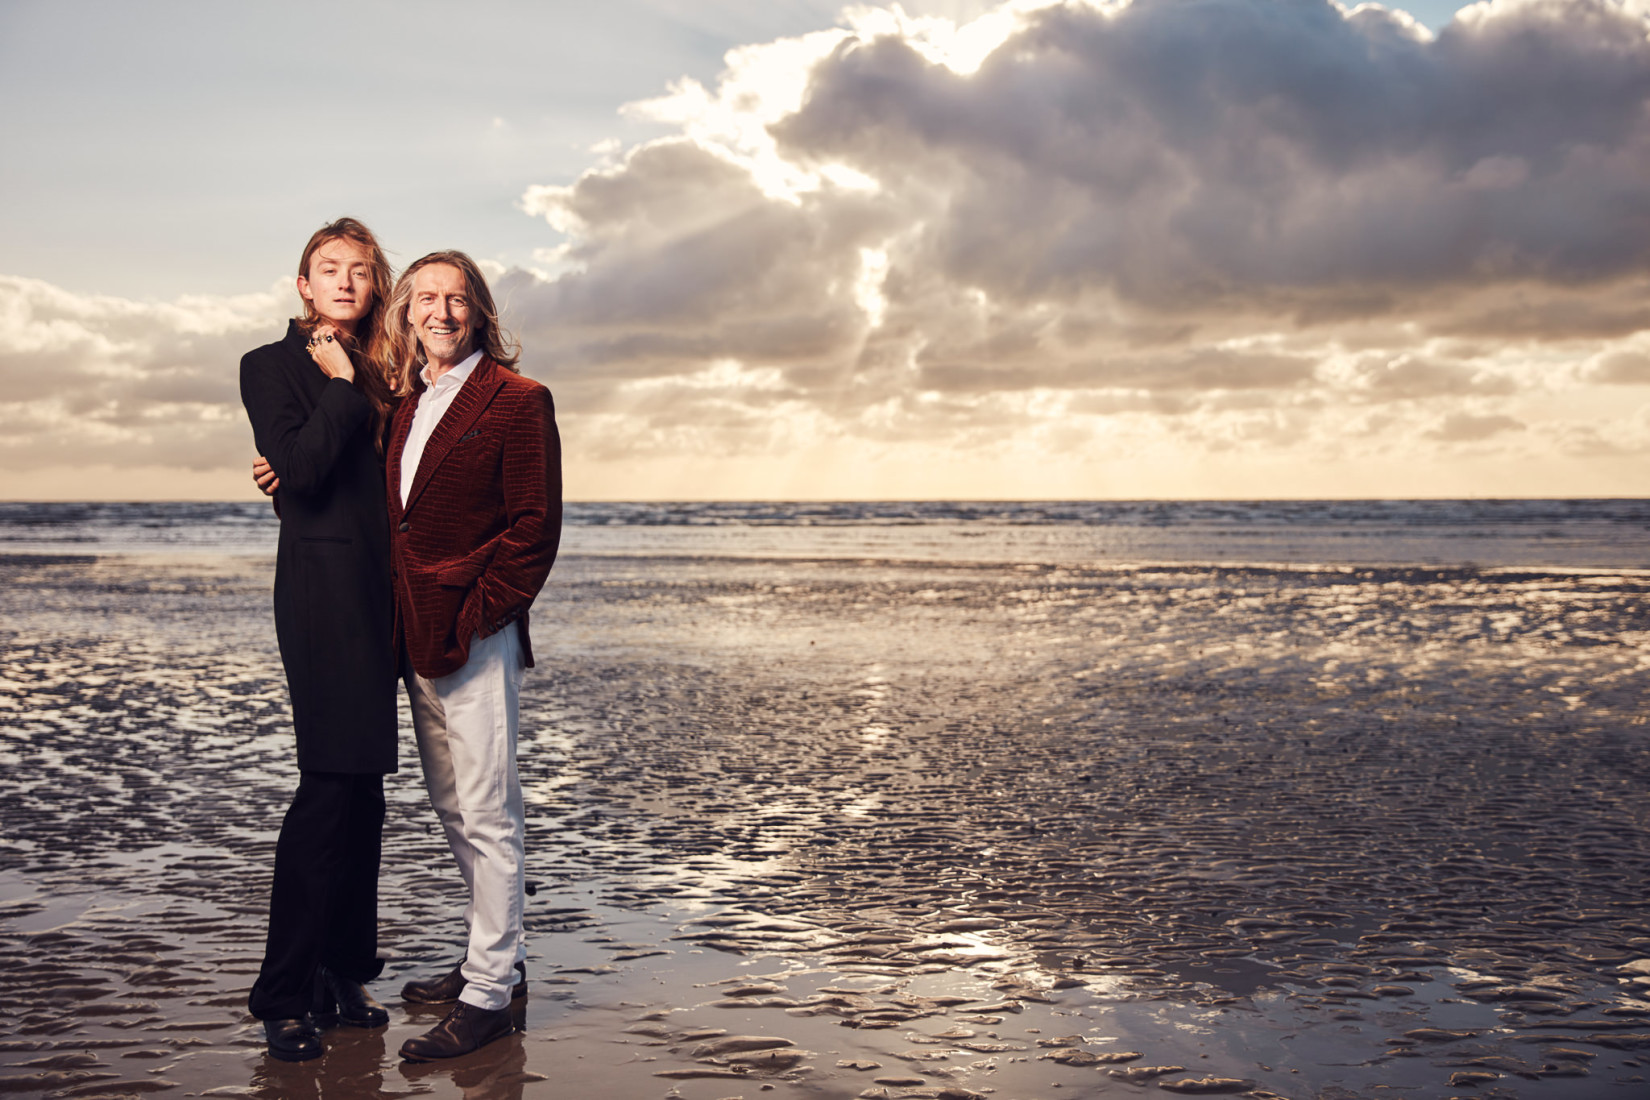 Nic and Harris Reed embrace on the beach in front of a sunrise